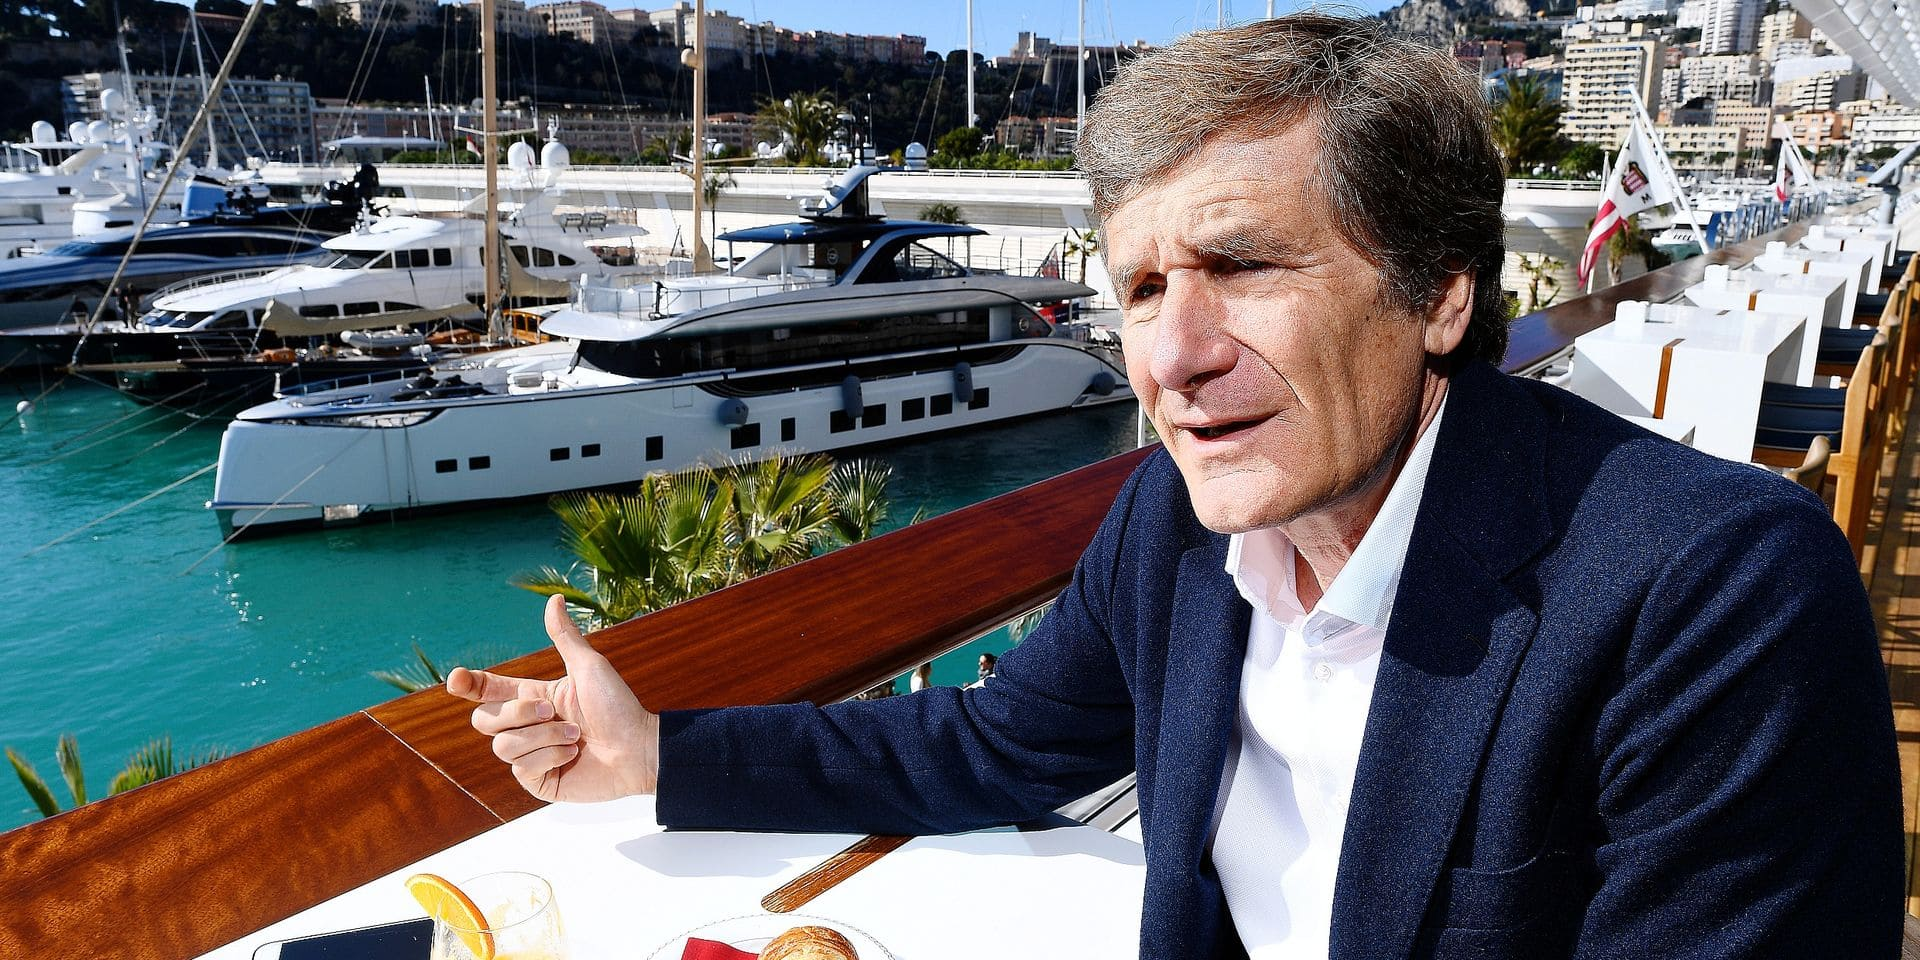 Belgian former race pilot Thierry Boutsen, pictured during a breakfast in Monaco, Wednesday 14 March 2018. BELGA PHOTO FREDERIC PORCU